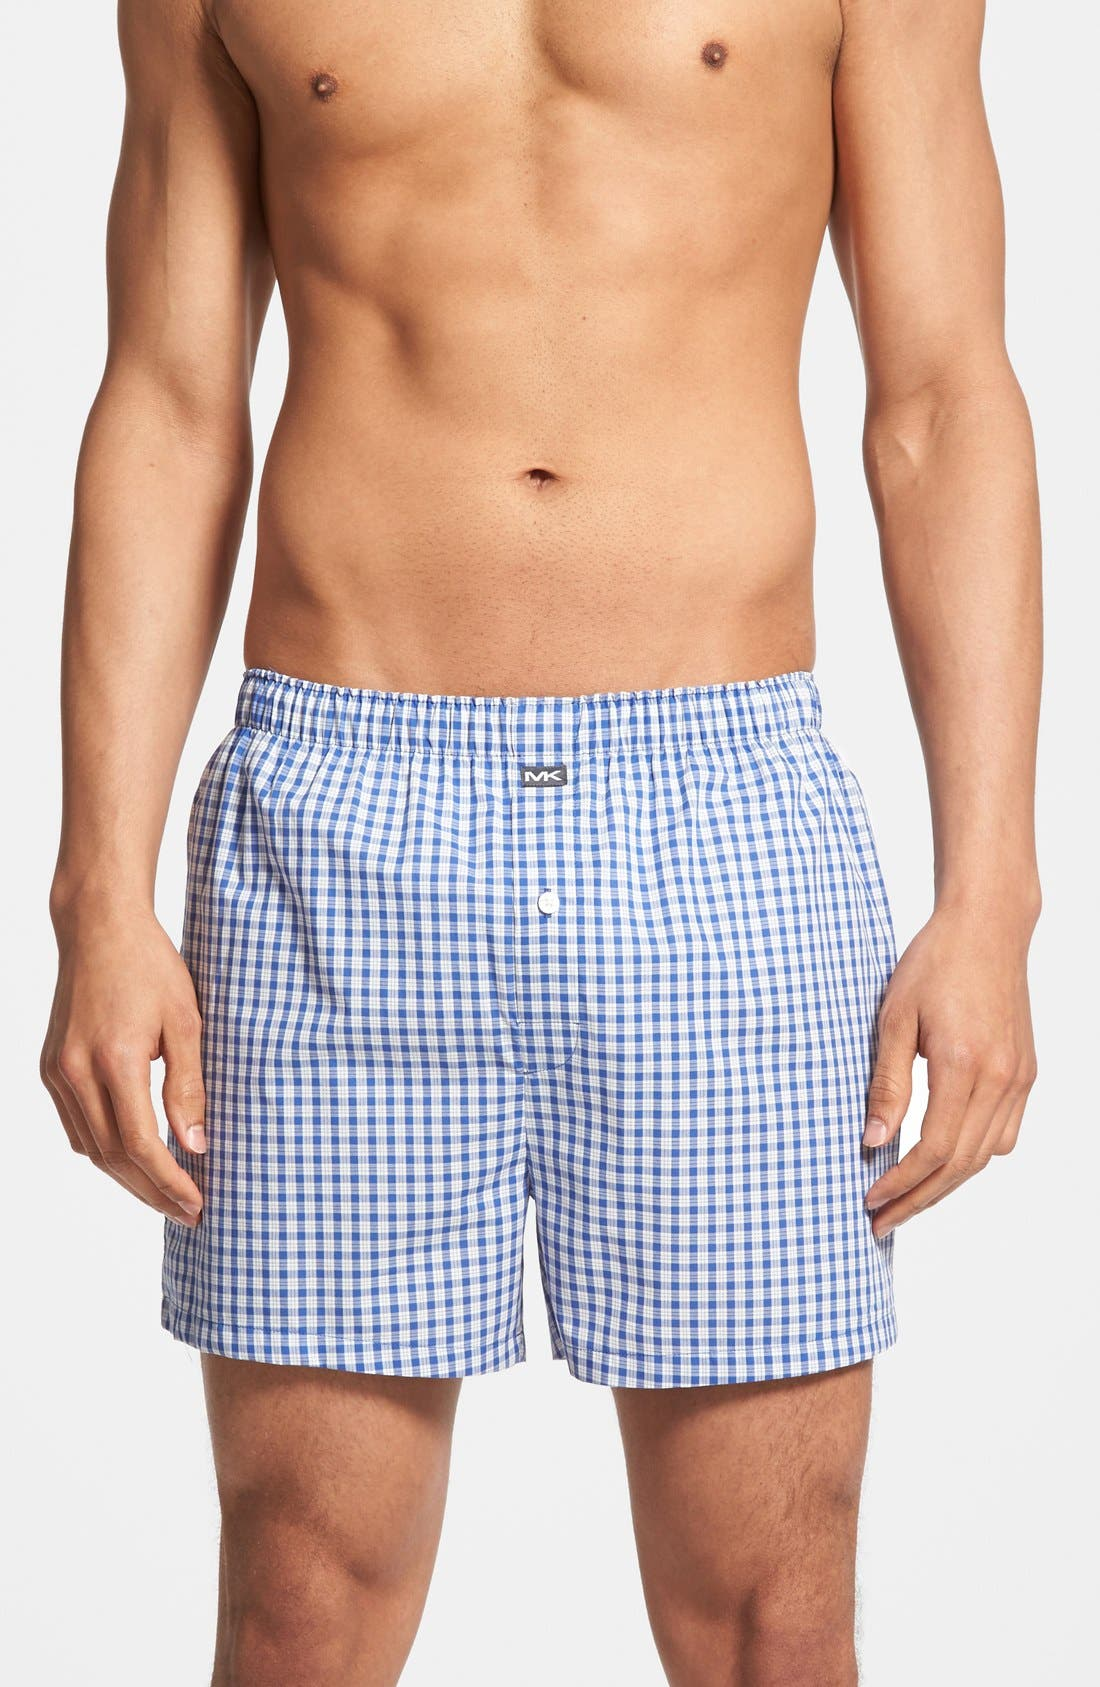 Main Image - Michael Kors Cotton Boxers (Assorted 2-Pack)